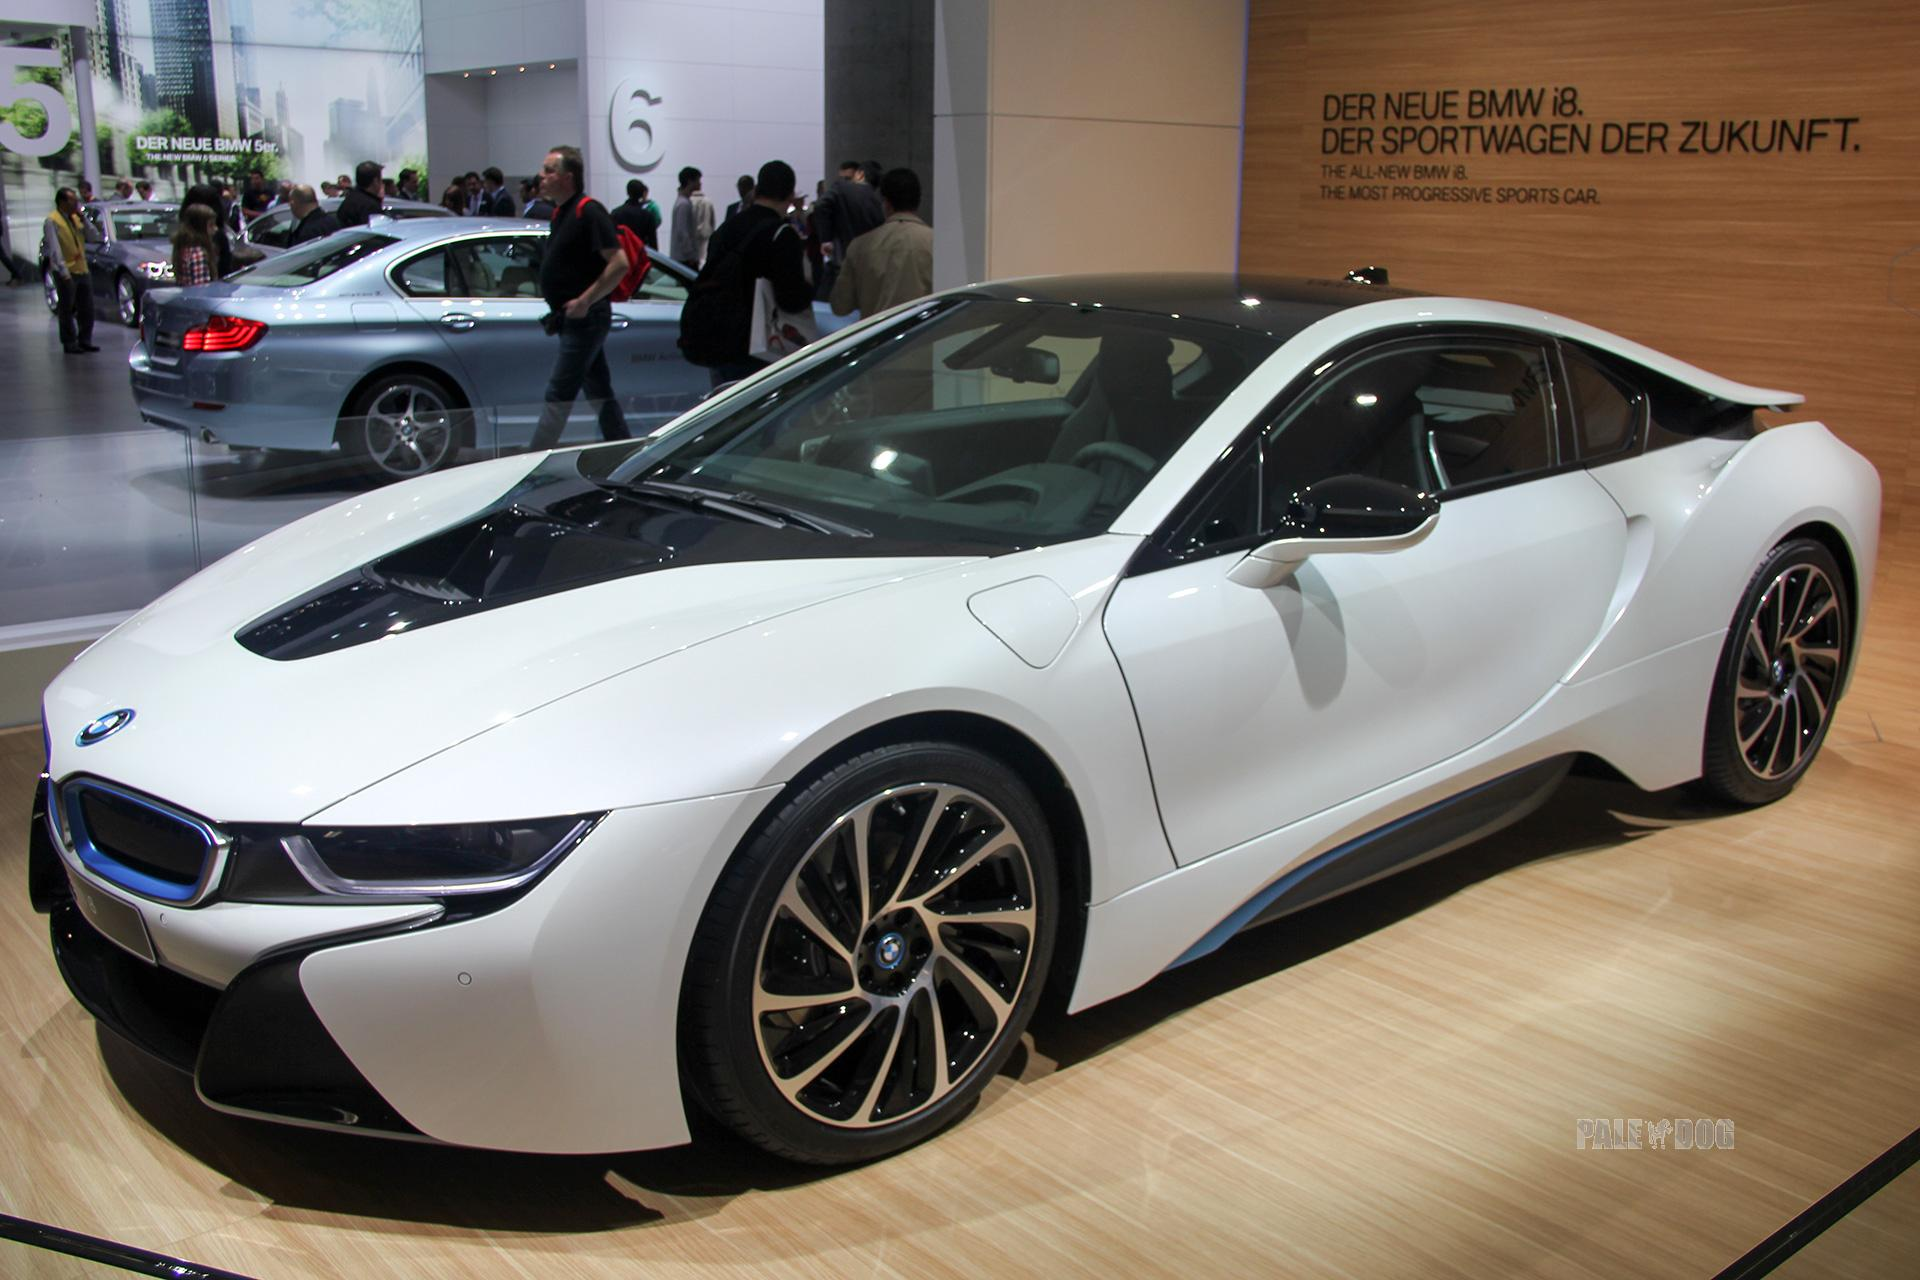 2013 Bmw I8 Front View 2010s Paledog Photo Collection